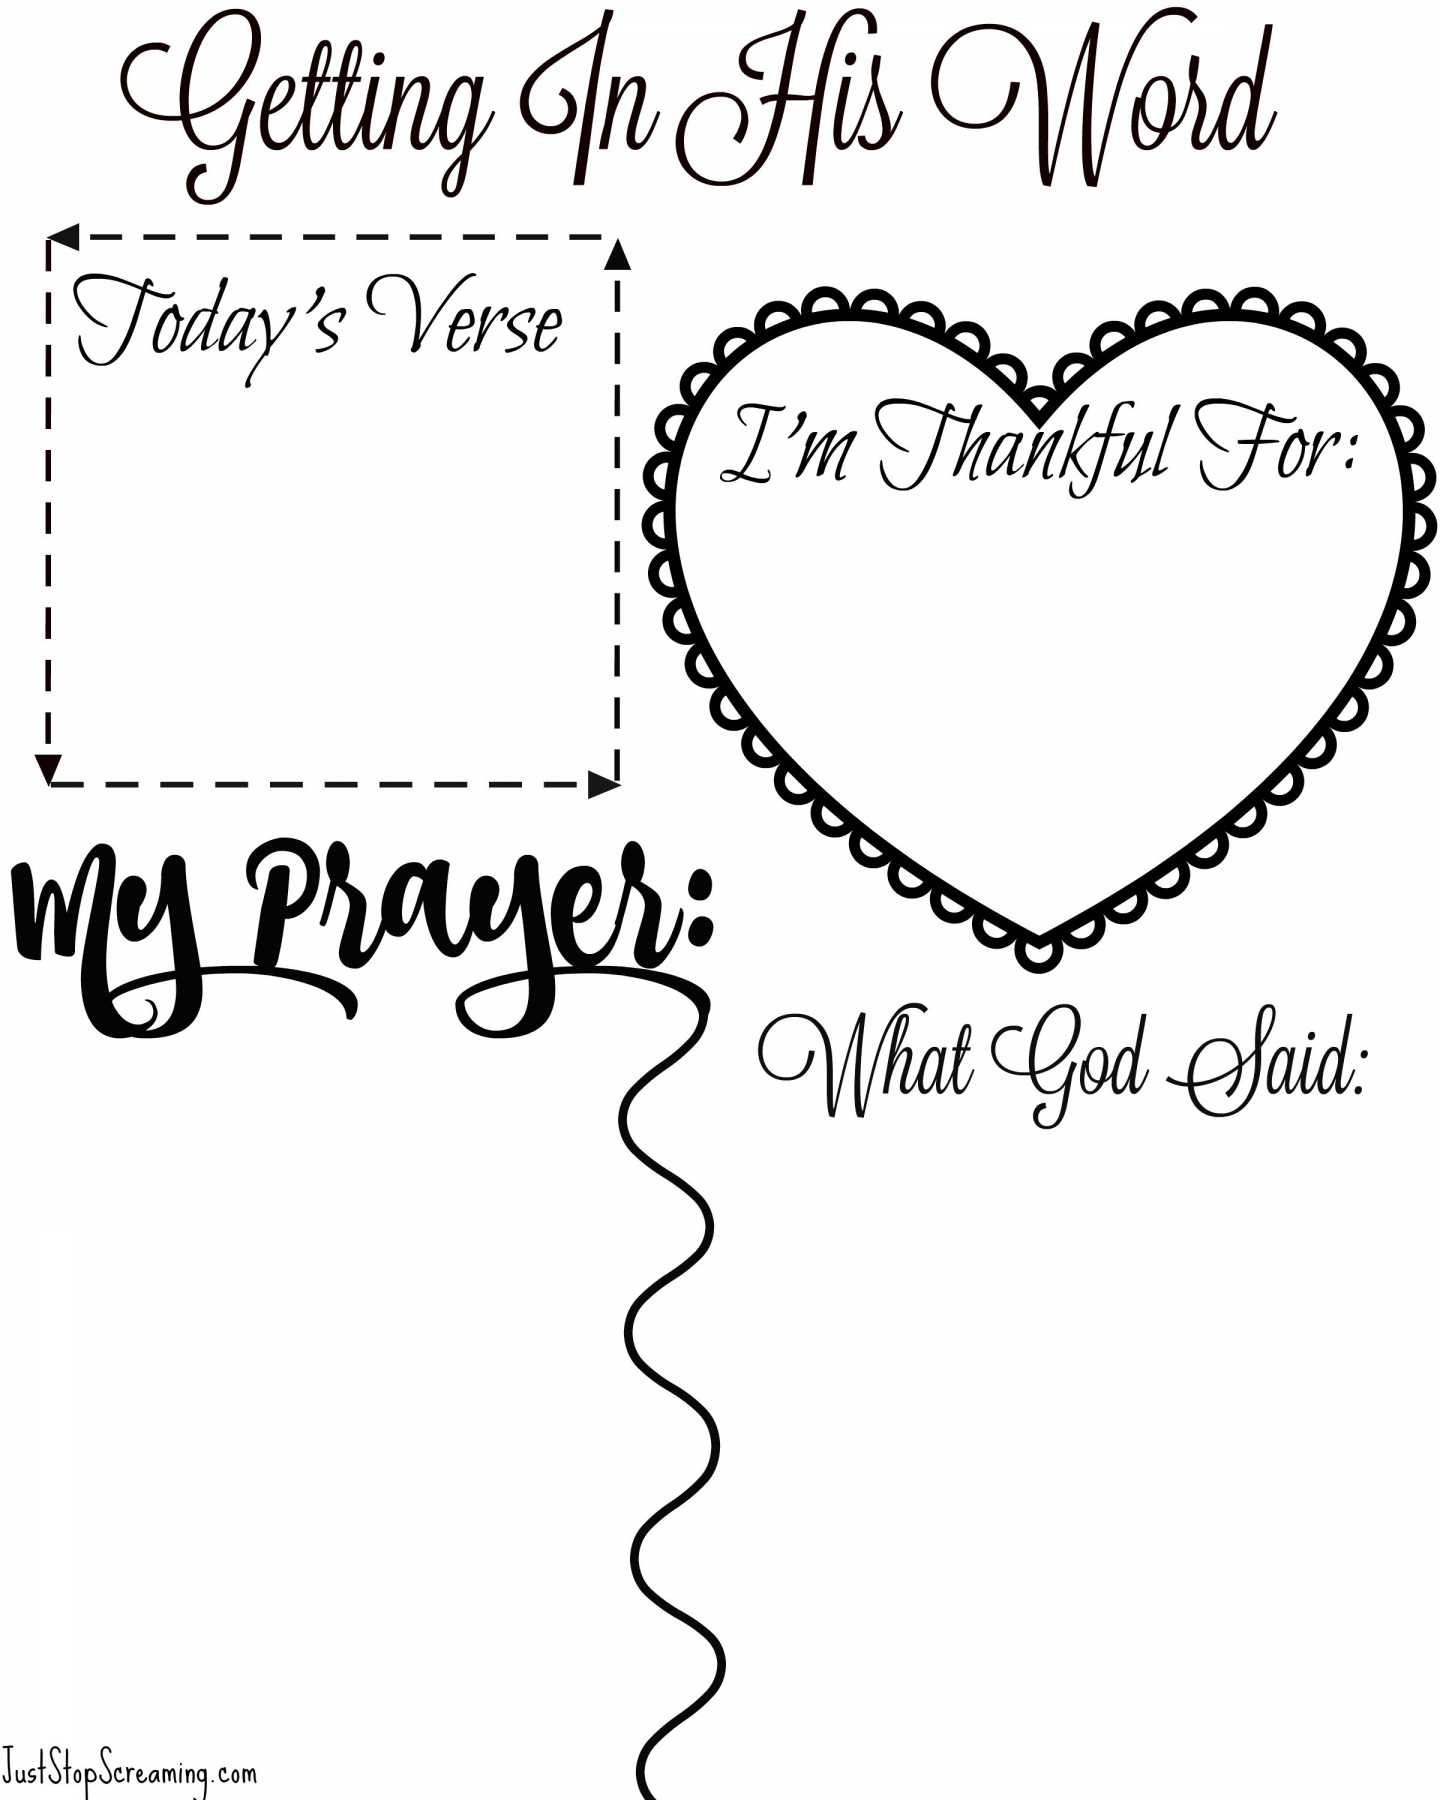 Free Printable Bible Study Worksheets (82+ Images In Collection) Page 1 - Free Printable Bible Study Worksheets